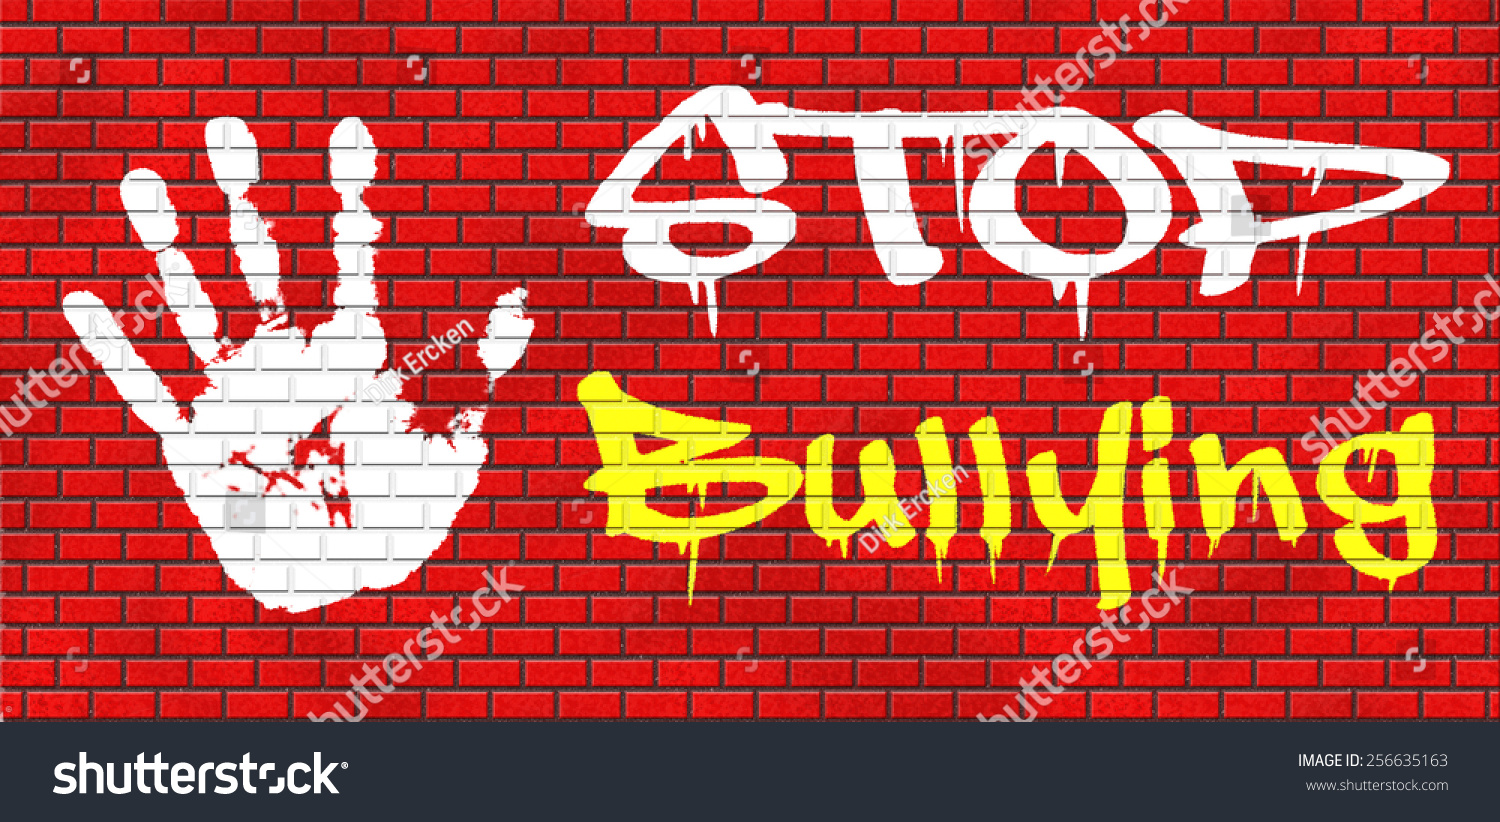 Graffiti wall text - Stop Bullying Graffiti No Bullies Prevention Against School Work Or In The Cyber Internet Harassment Graffiti